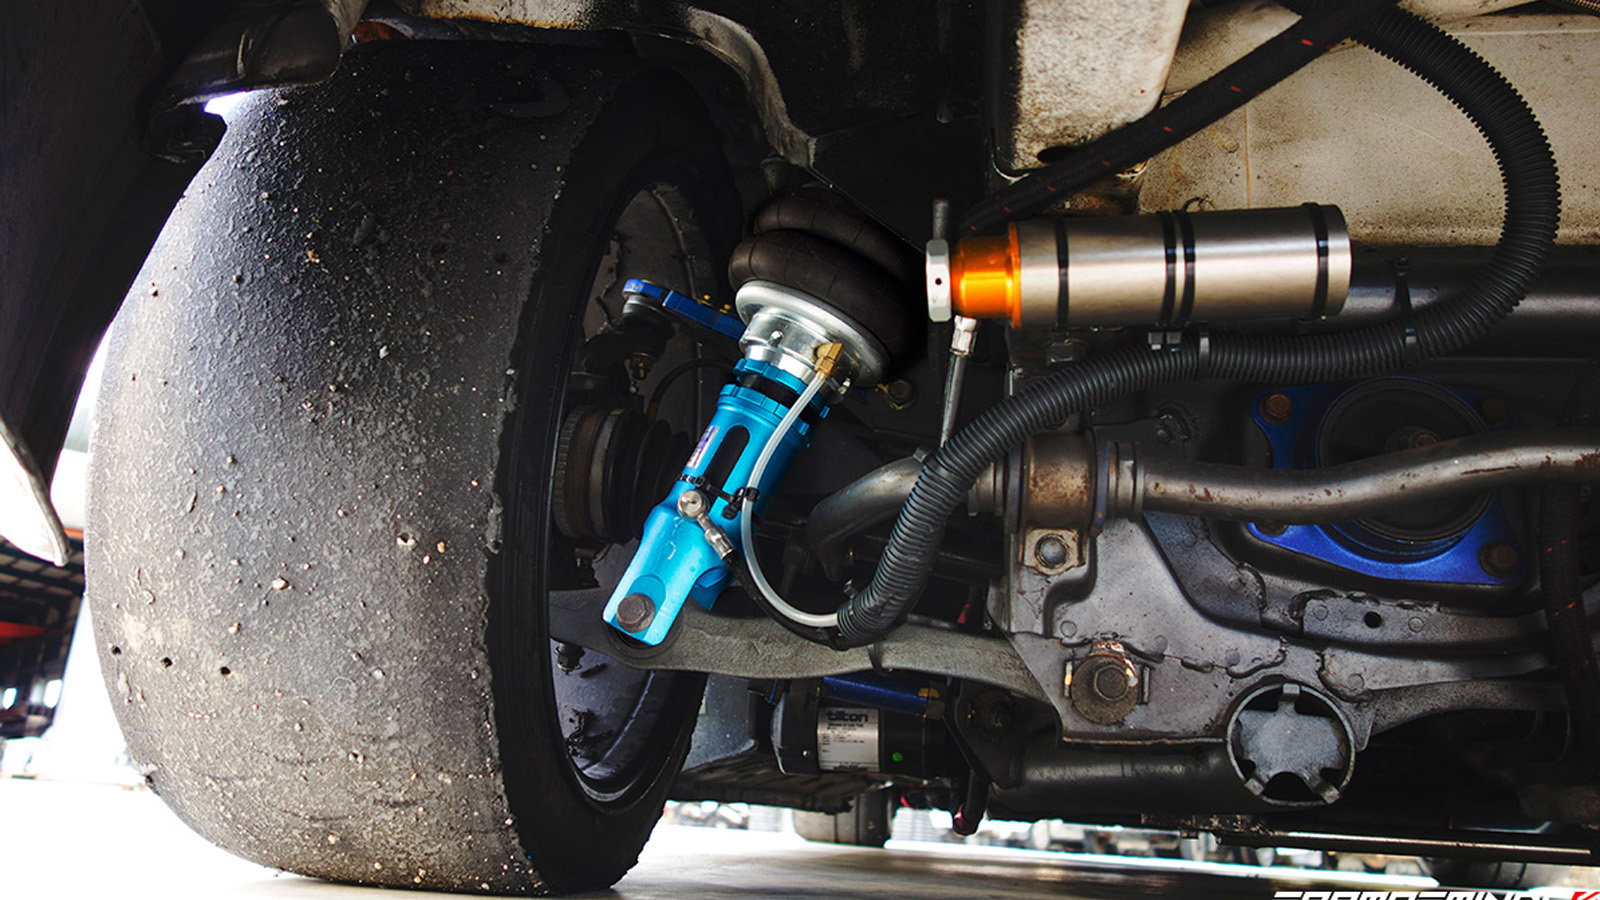 Ingredients of a Proper Suspension Setup